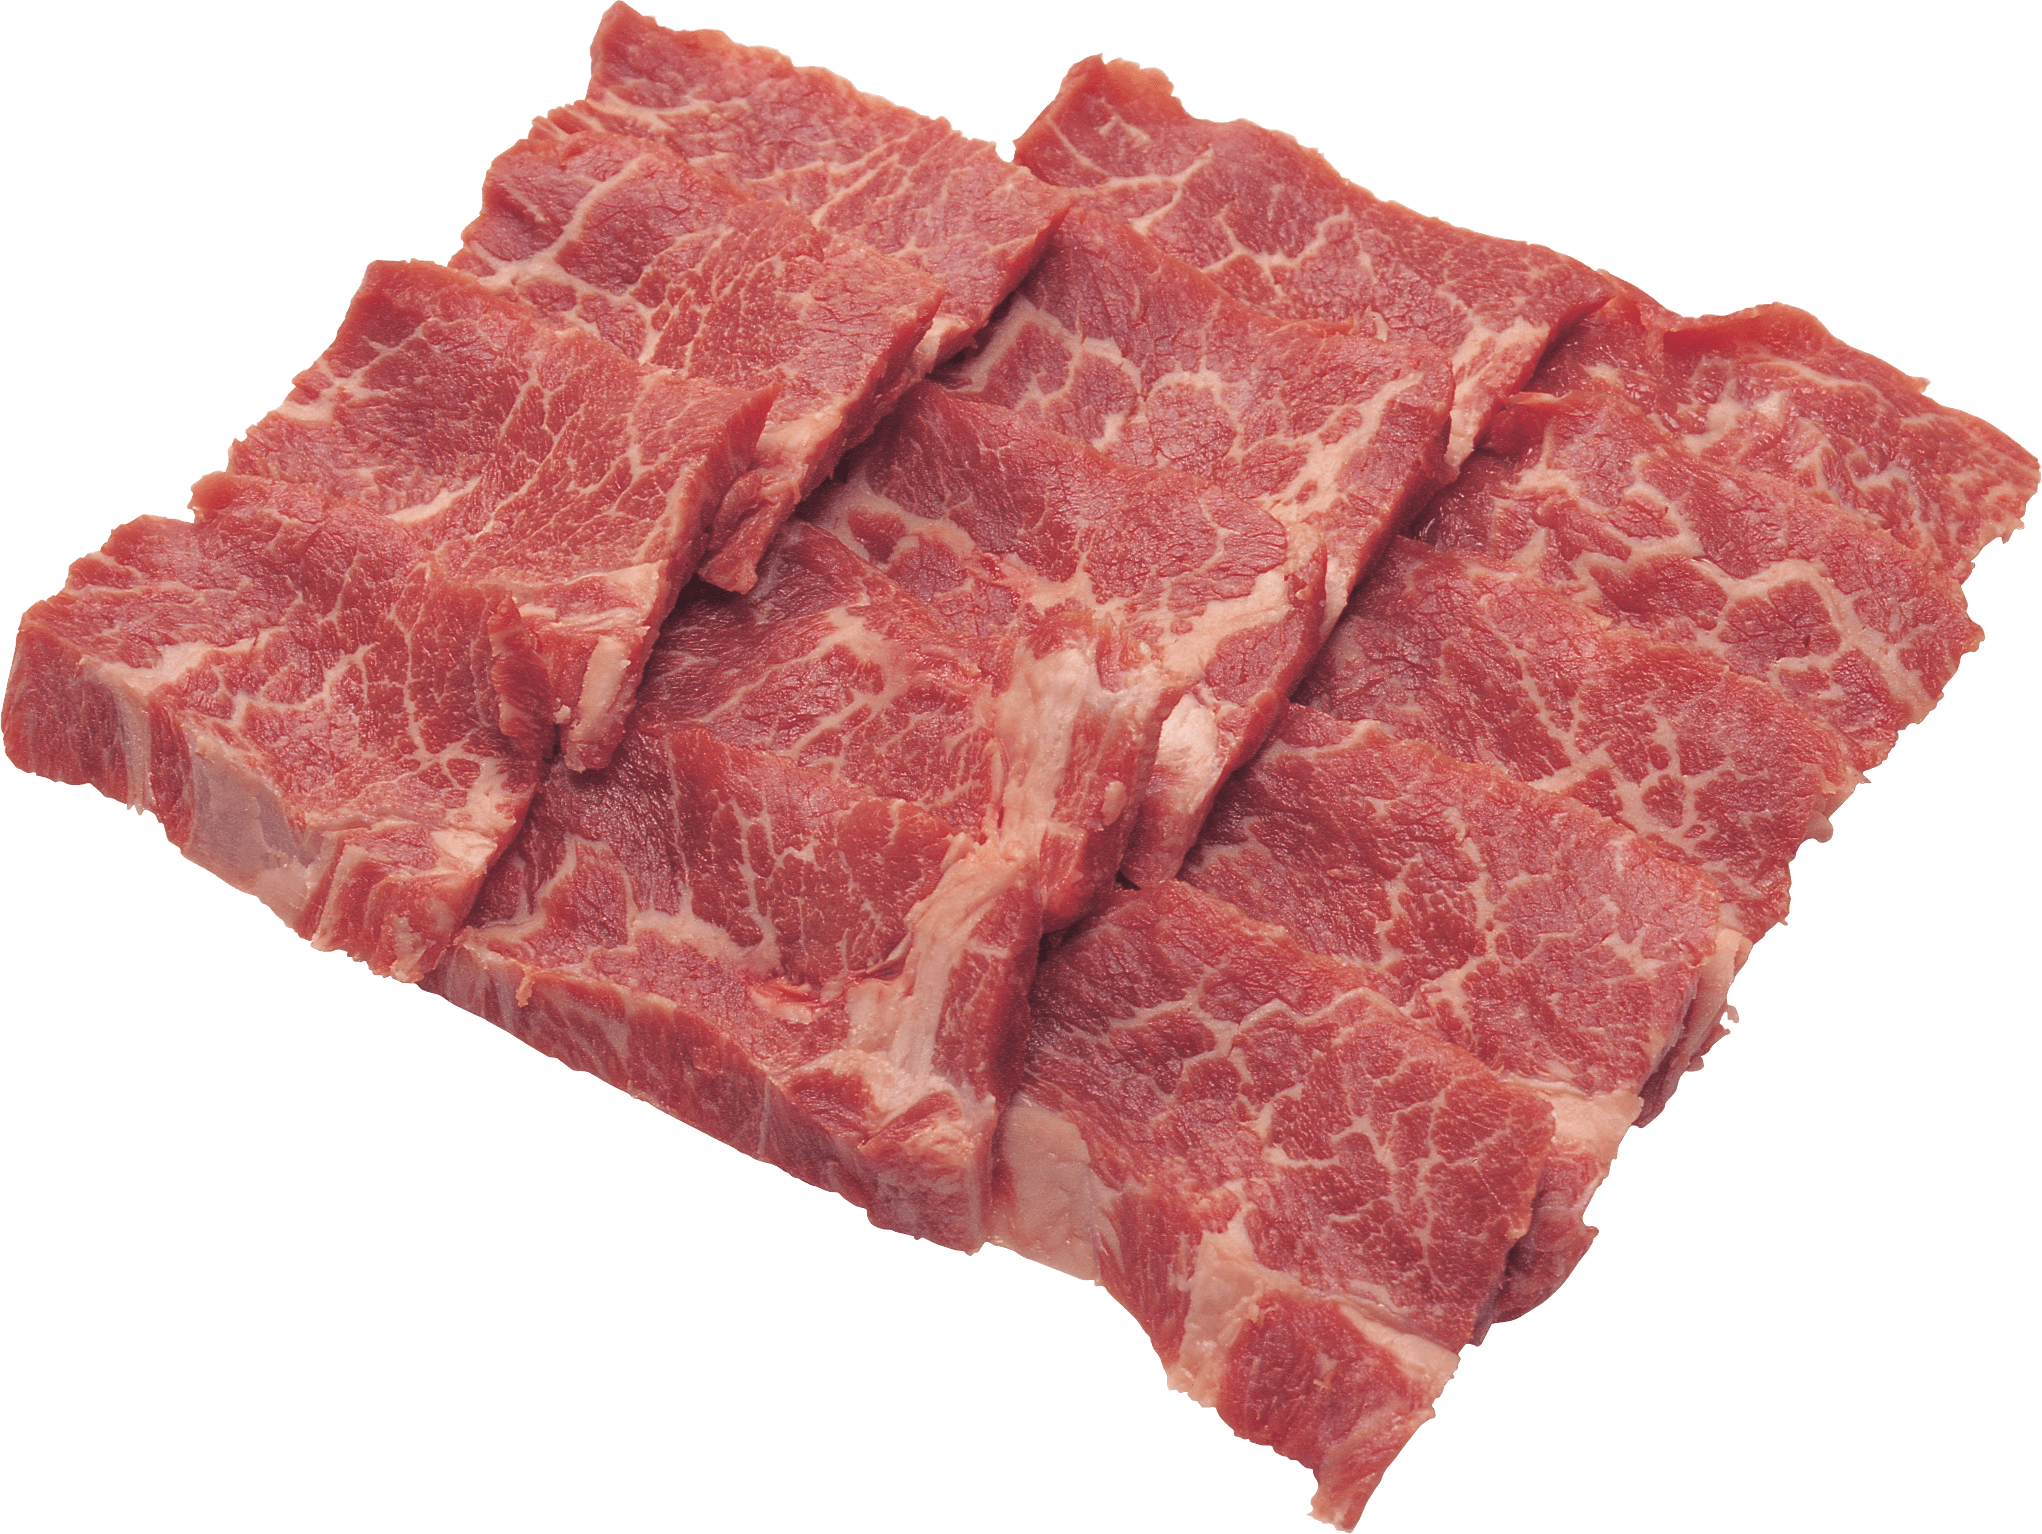 Meat Png Image PNG Image